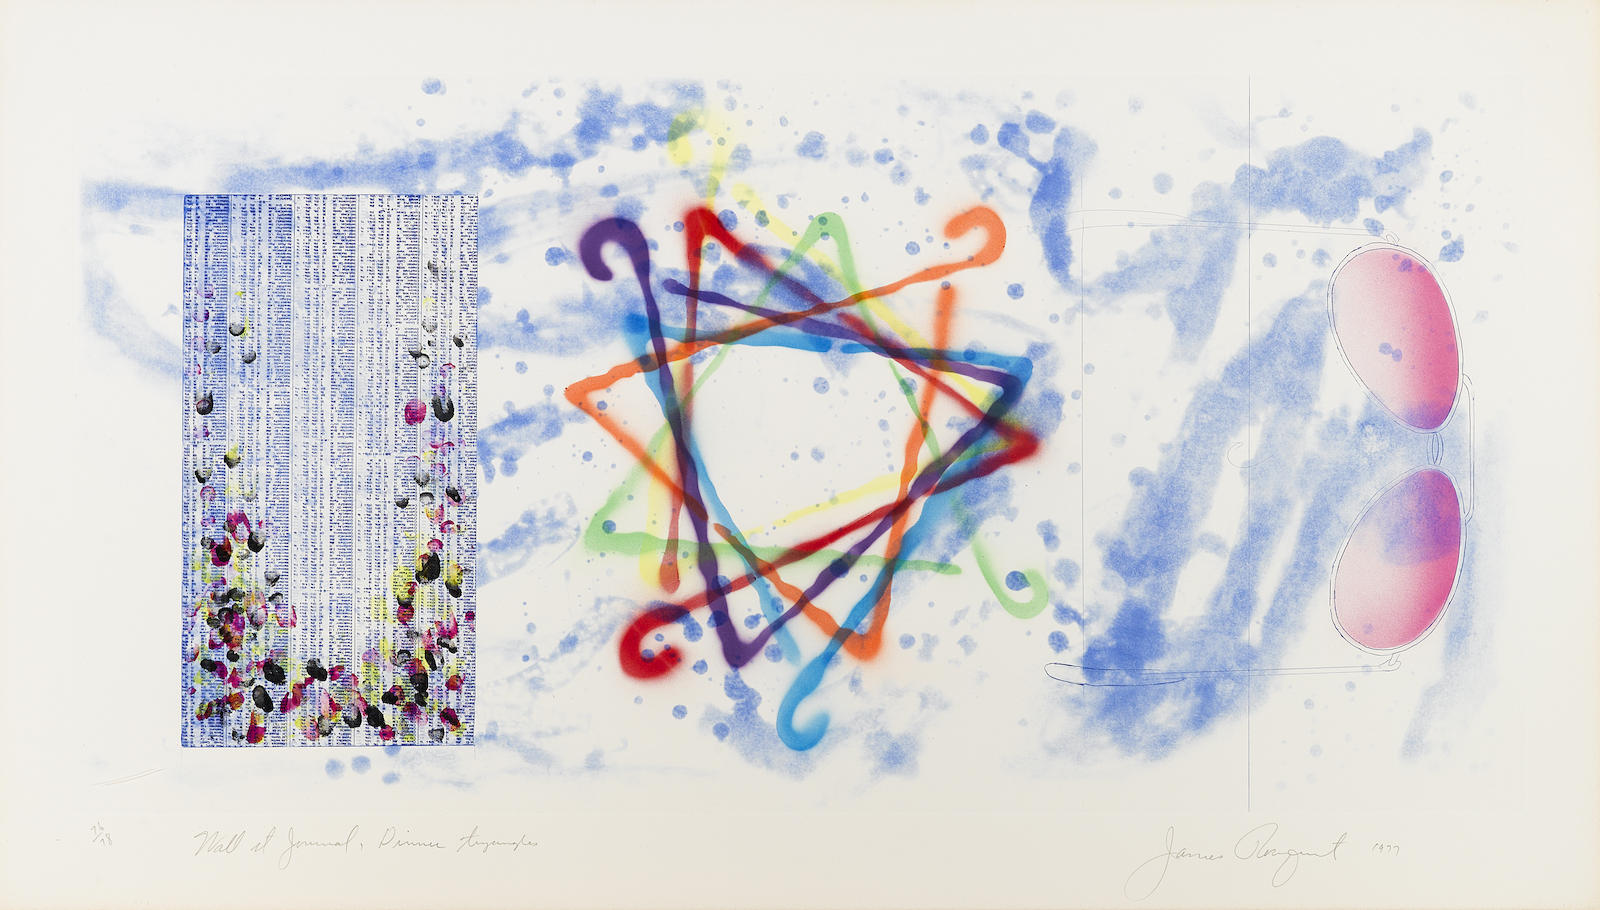 James Rosenquist-Wall Street Journal, Dinner Triangles (G. 116)-1977